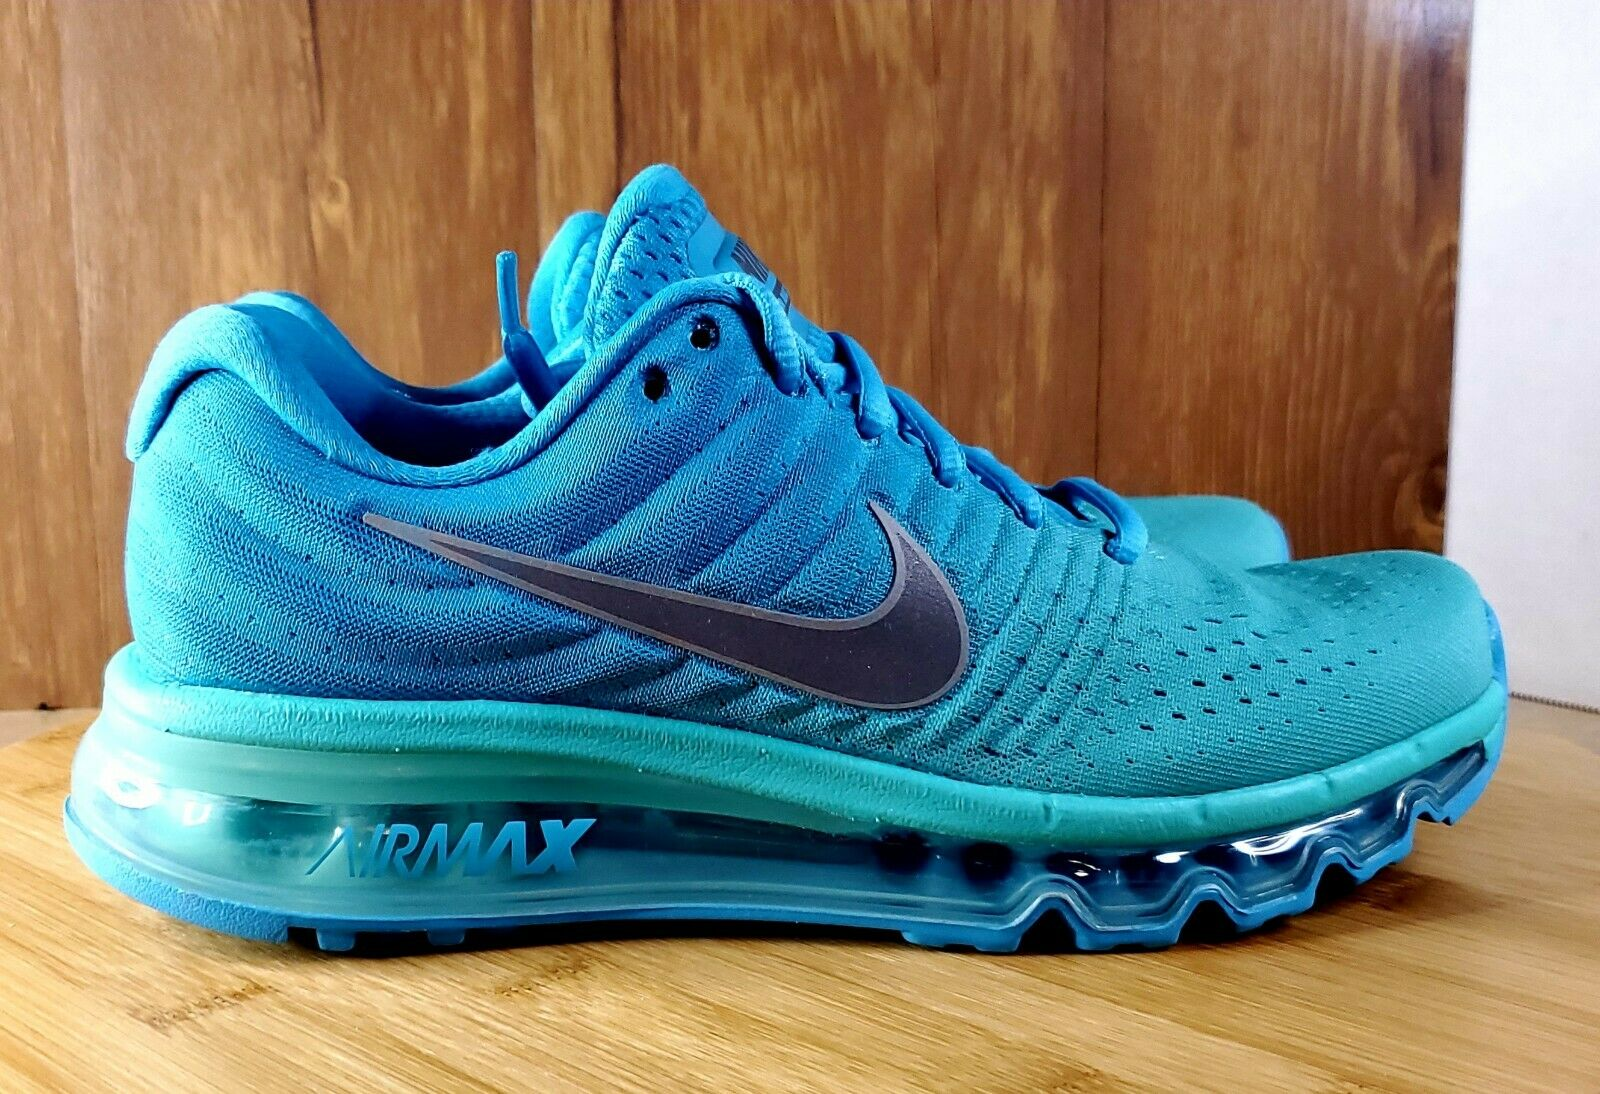 Rocío Educación María  Nike Air Max 2017 GS Chlorine Blue & Turquoise Running Sz 6.5Y NEW 851623  402 for sale online